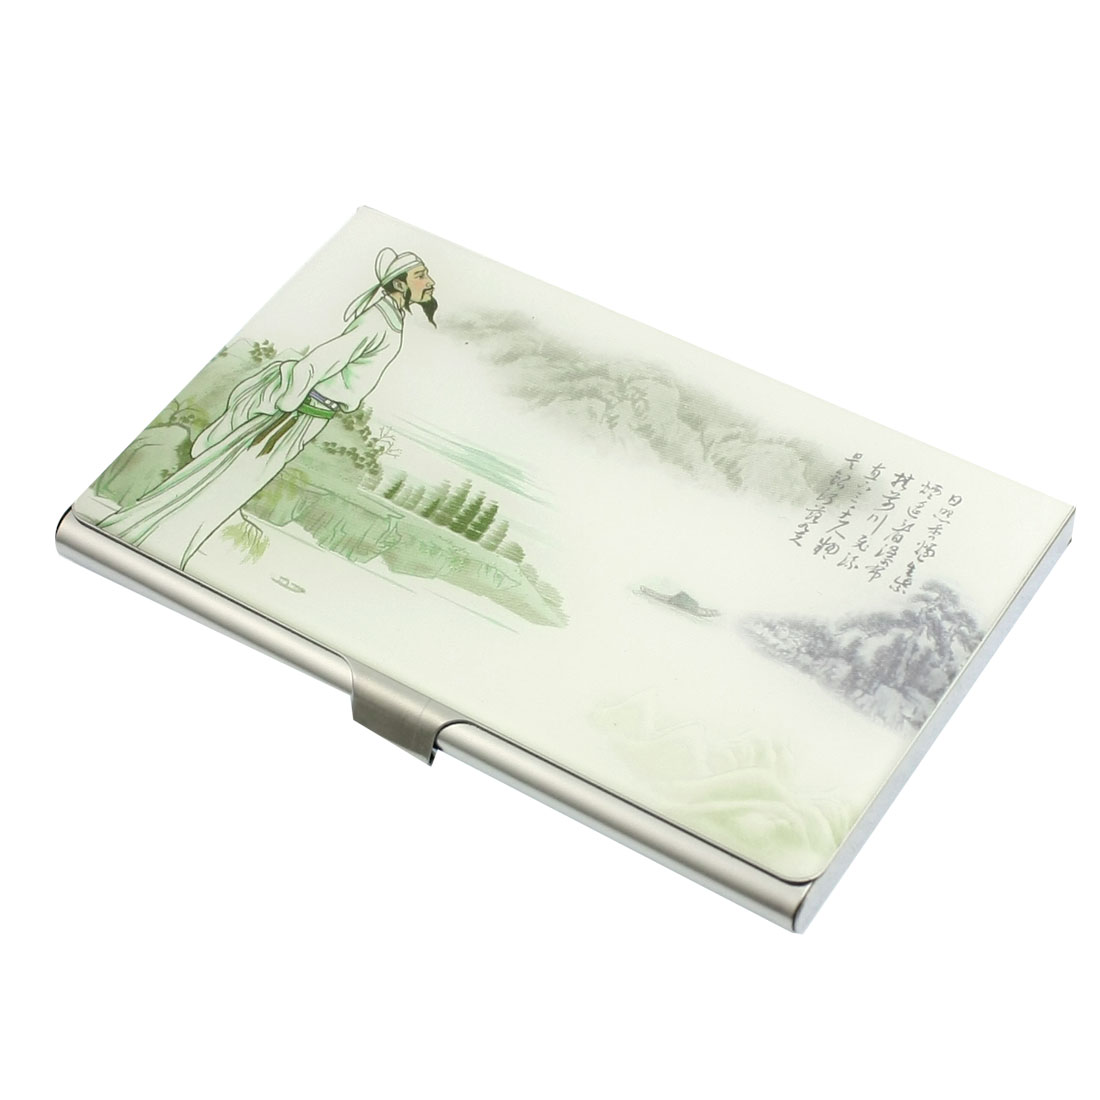 Mirror Polish Stainless Steel Poet Moutains Pattern Business Card Holder